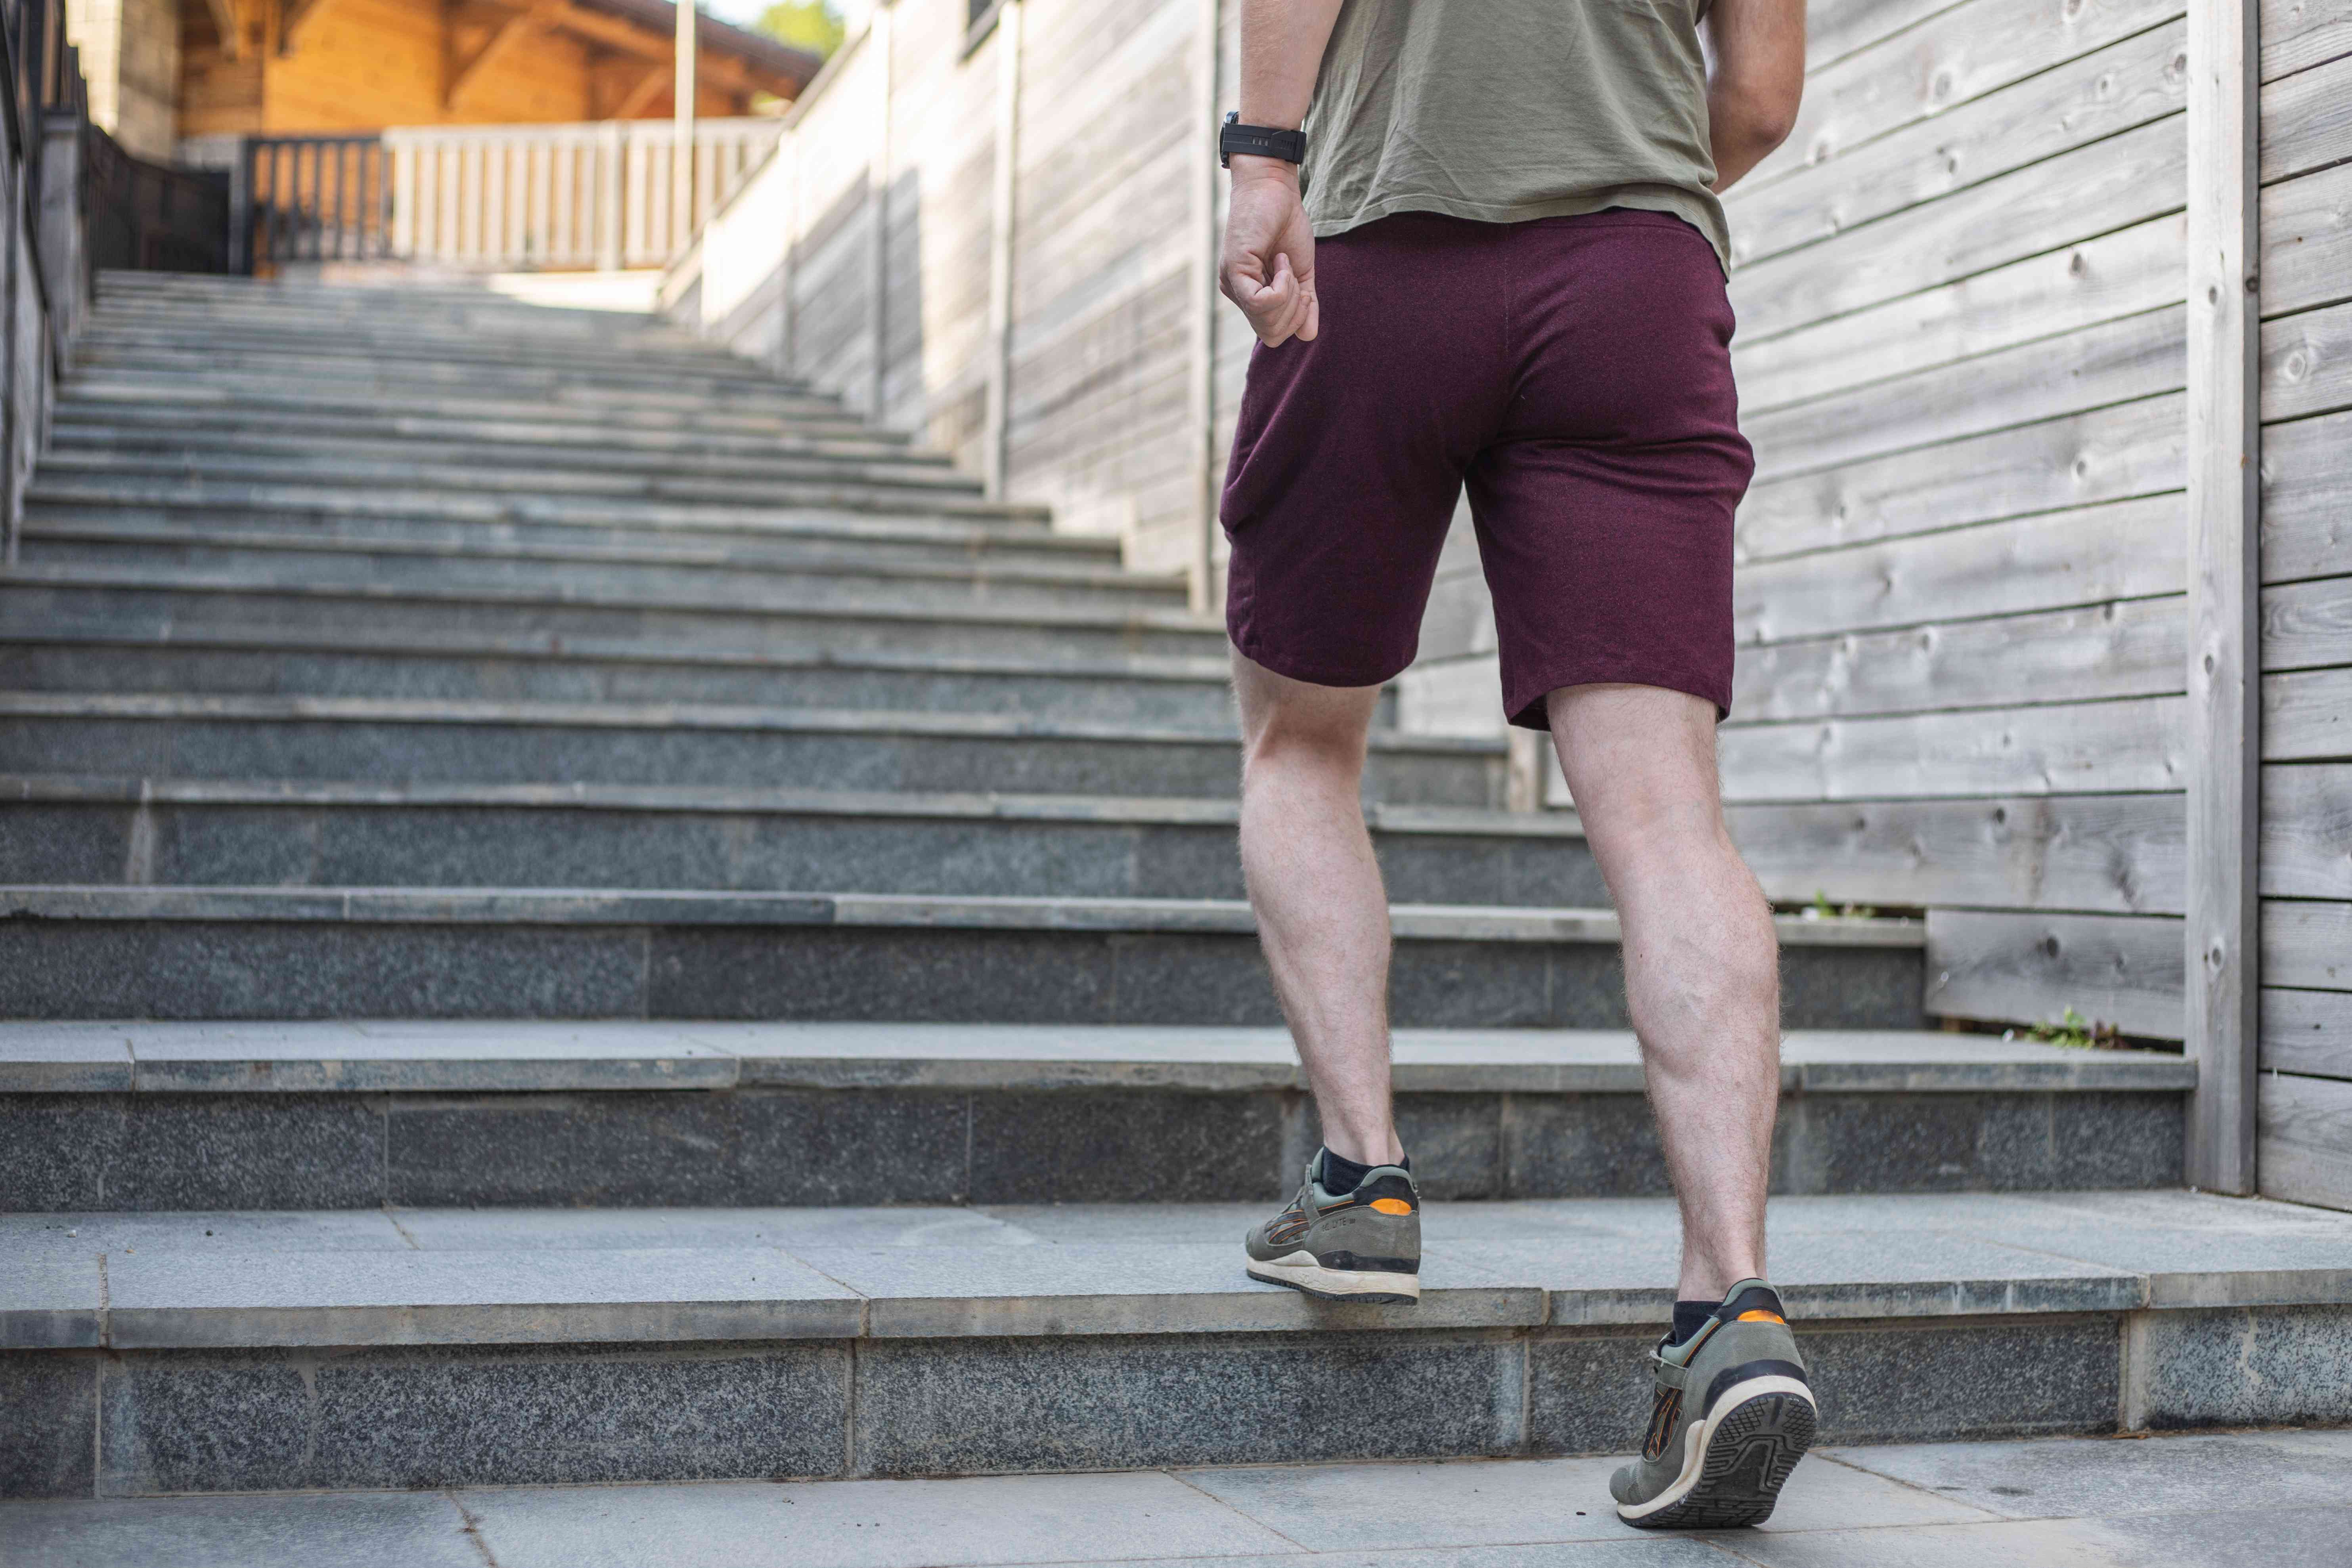 man in maroon shorts and running shoes walks up low-incline stairs outside